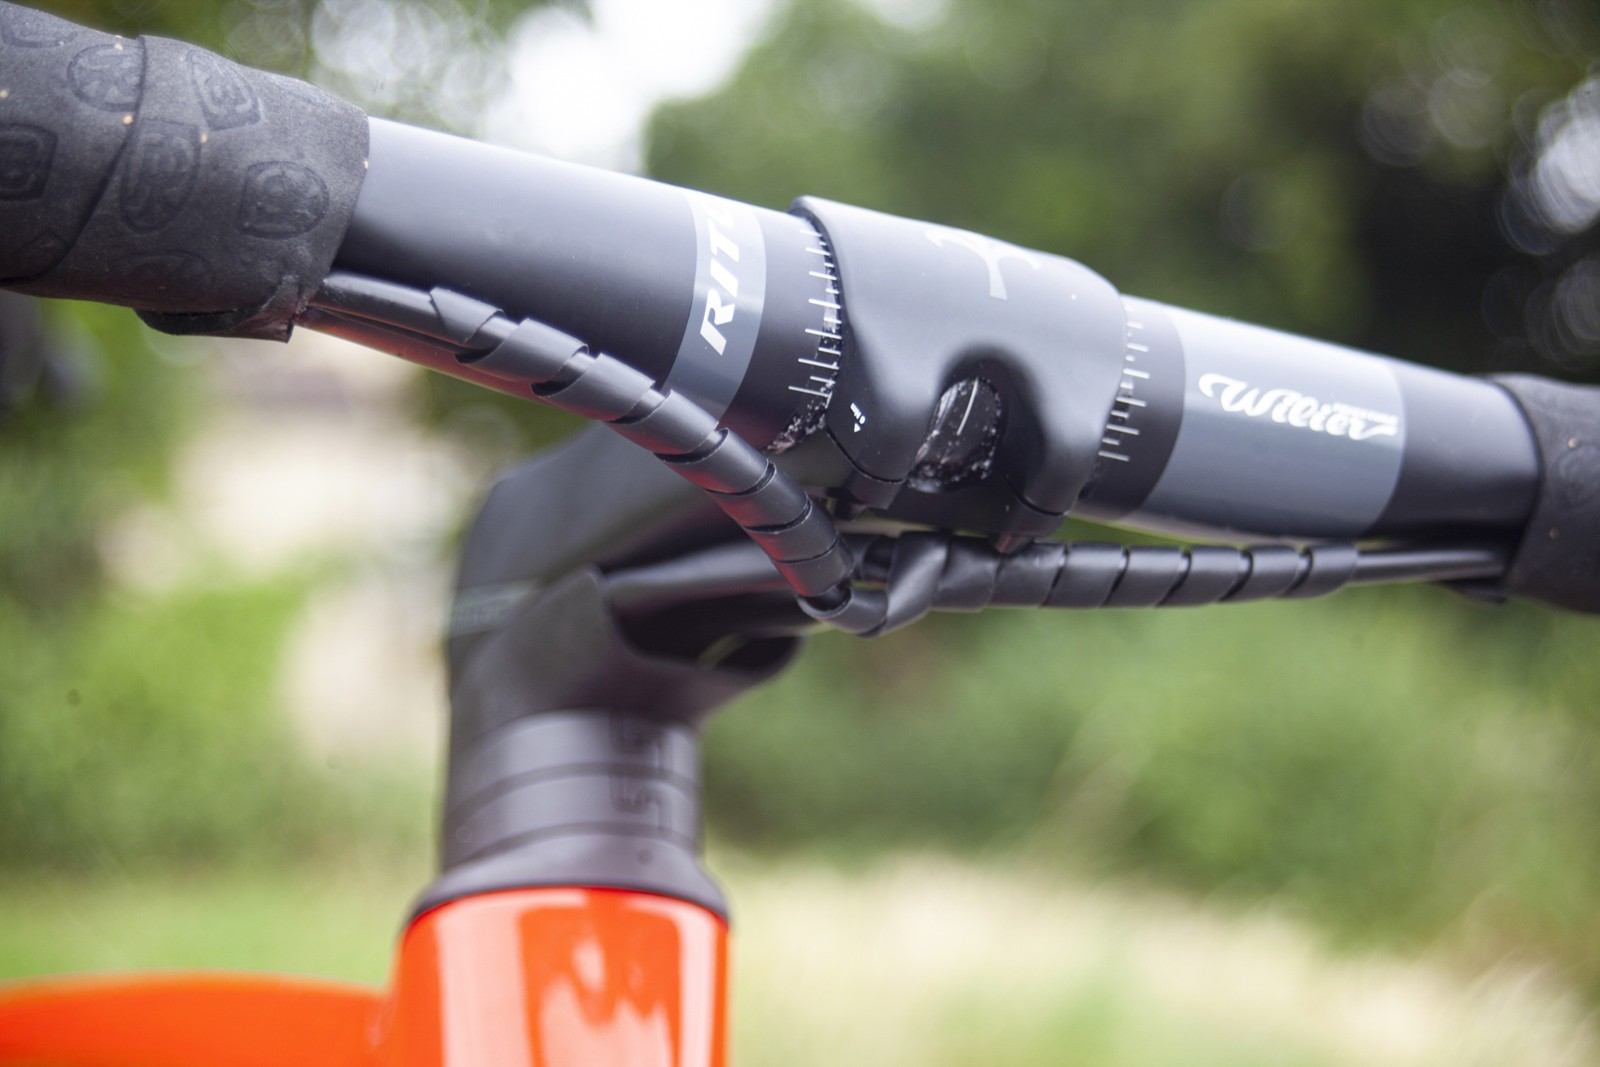 Wilier Cento10 SL Ultegra Di2 stem and handlebar, cable routing